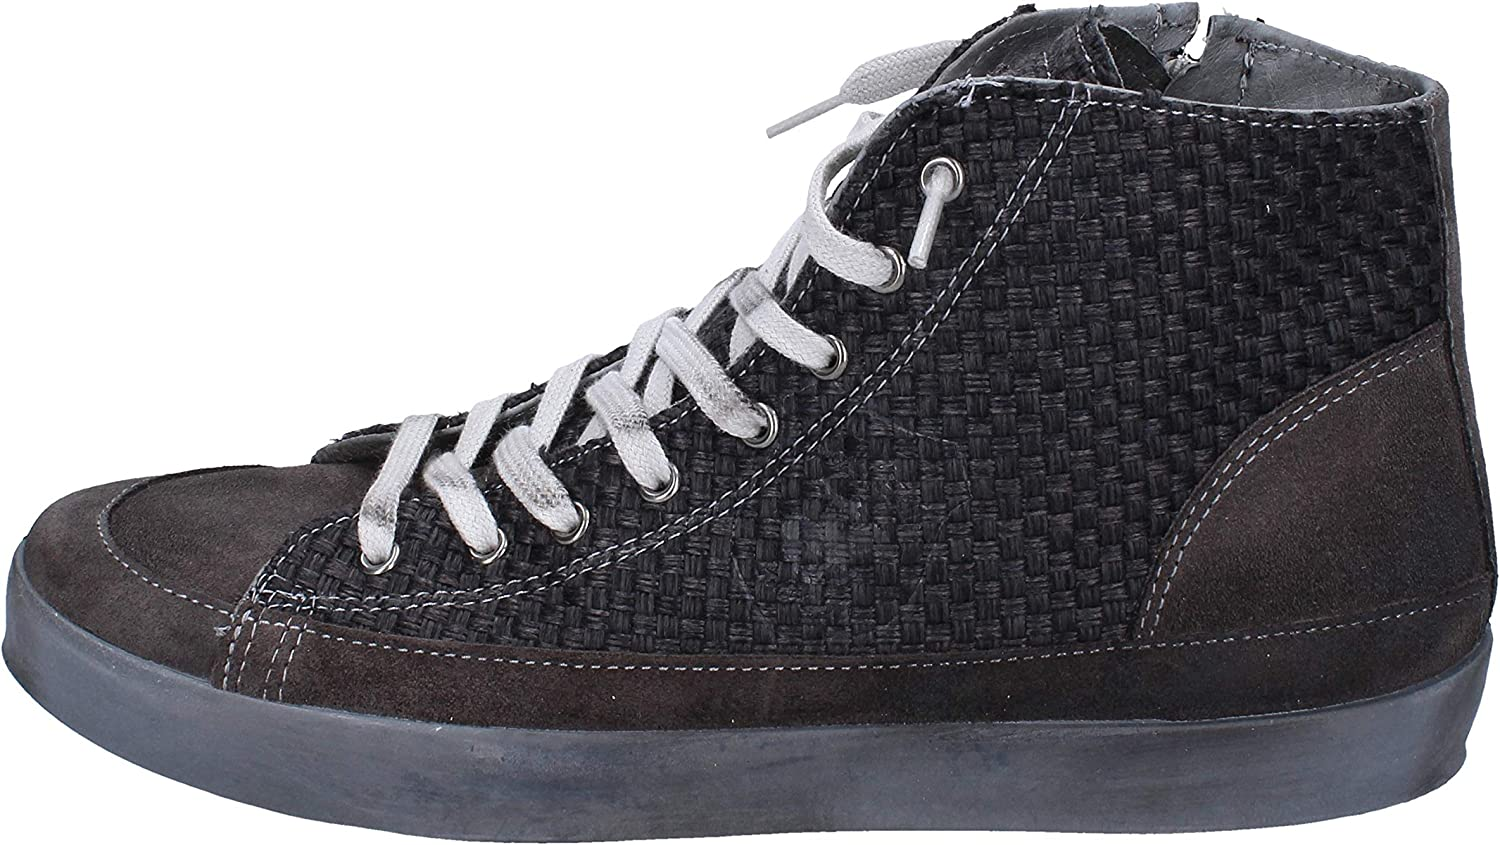 Beverly Hills Polo Club Fashion-Sneakers Mens Suede Grey